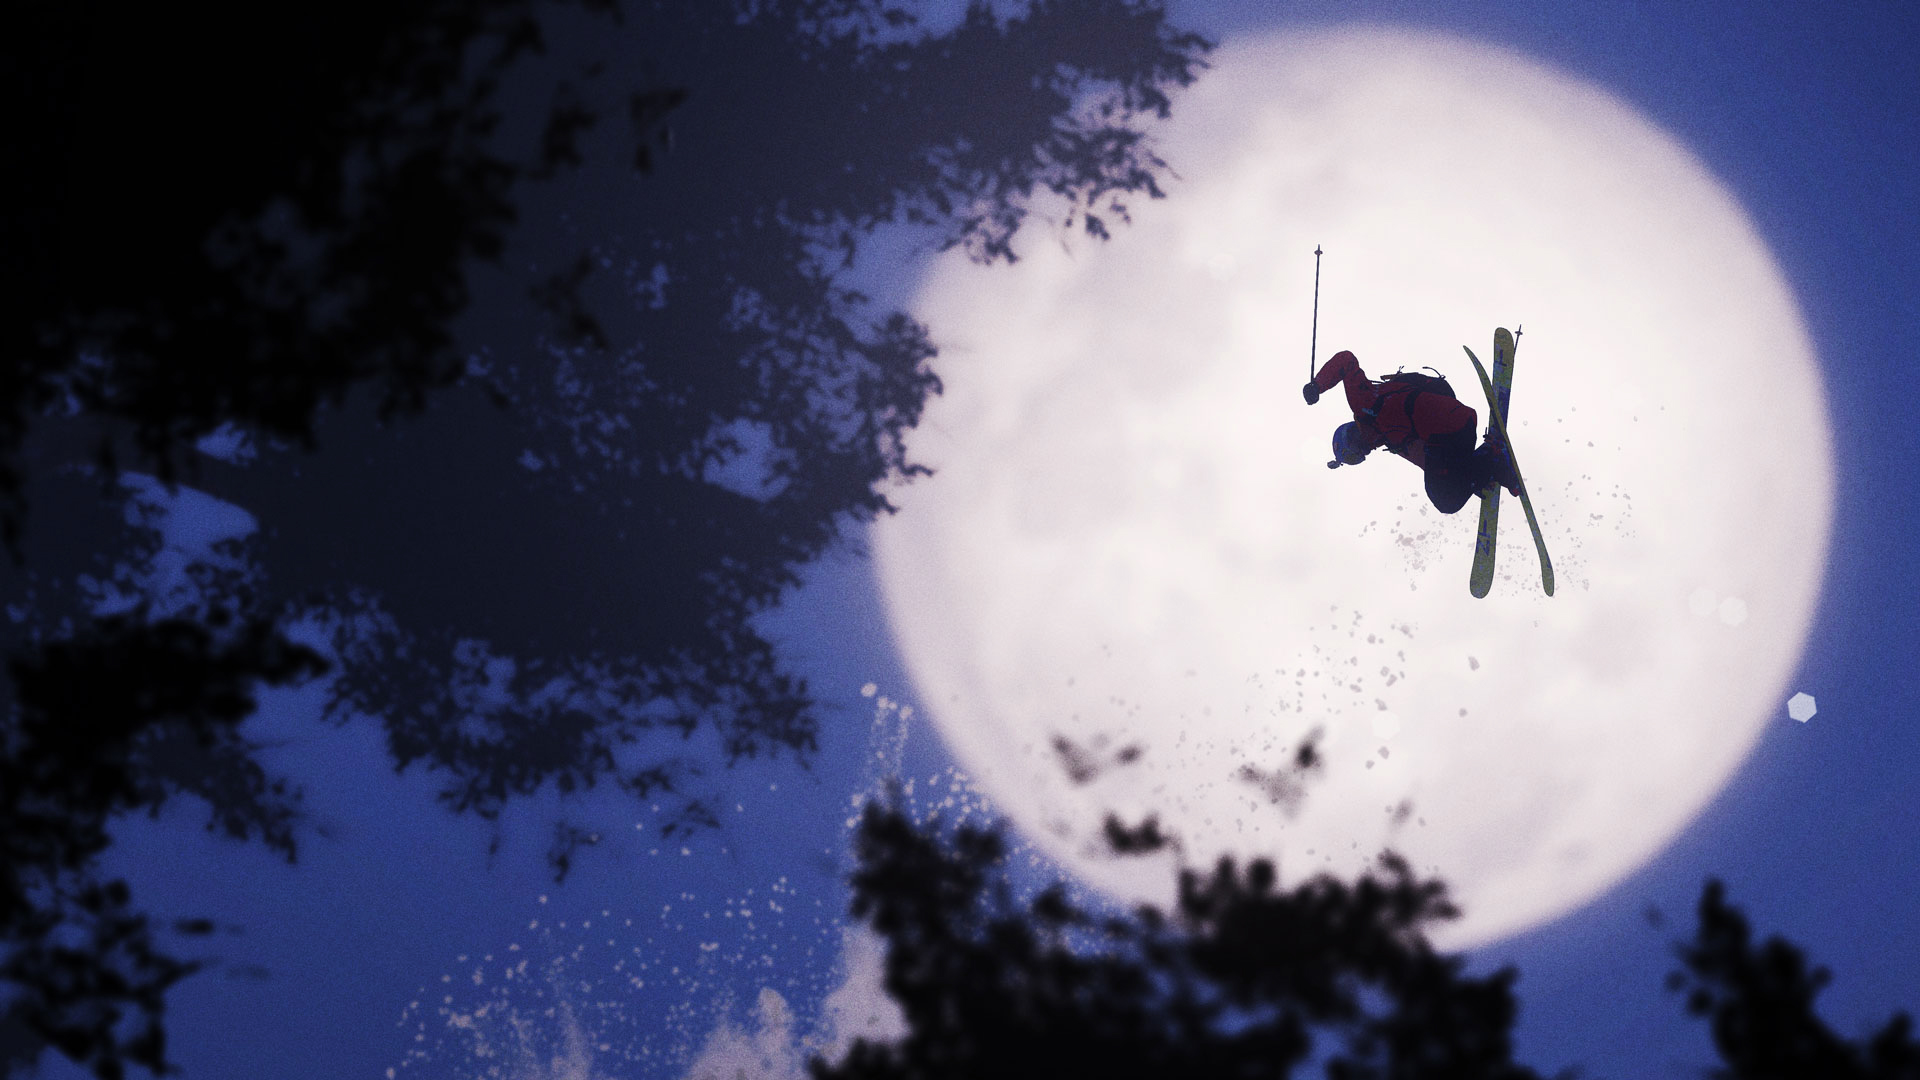 Pin by Juli Singh on Photography in  Steep game Wallpaper